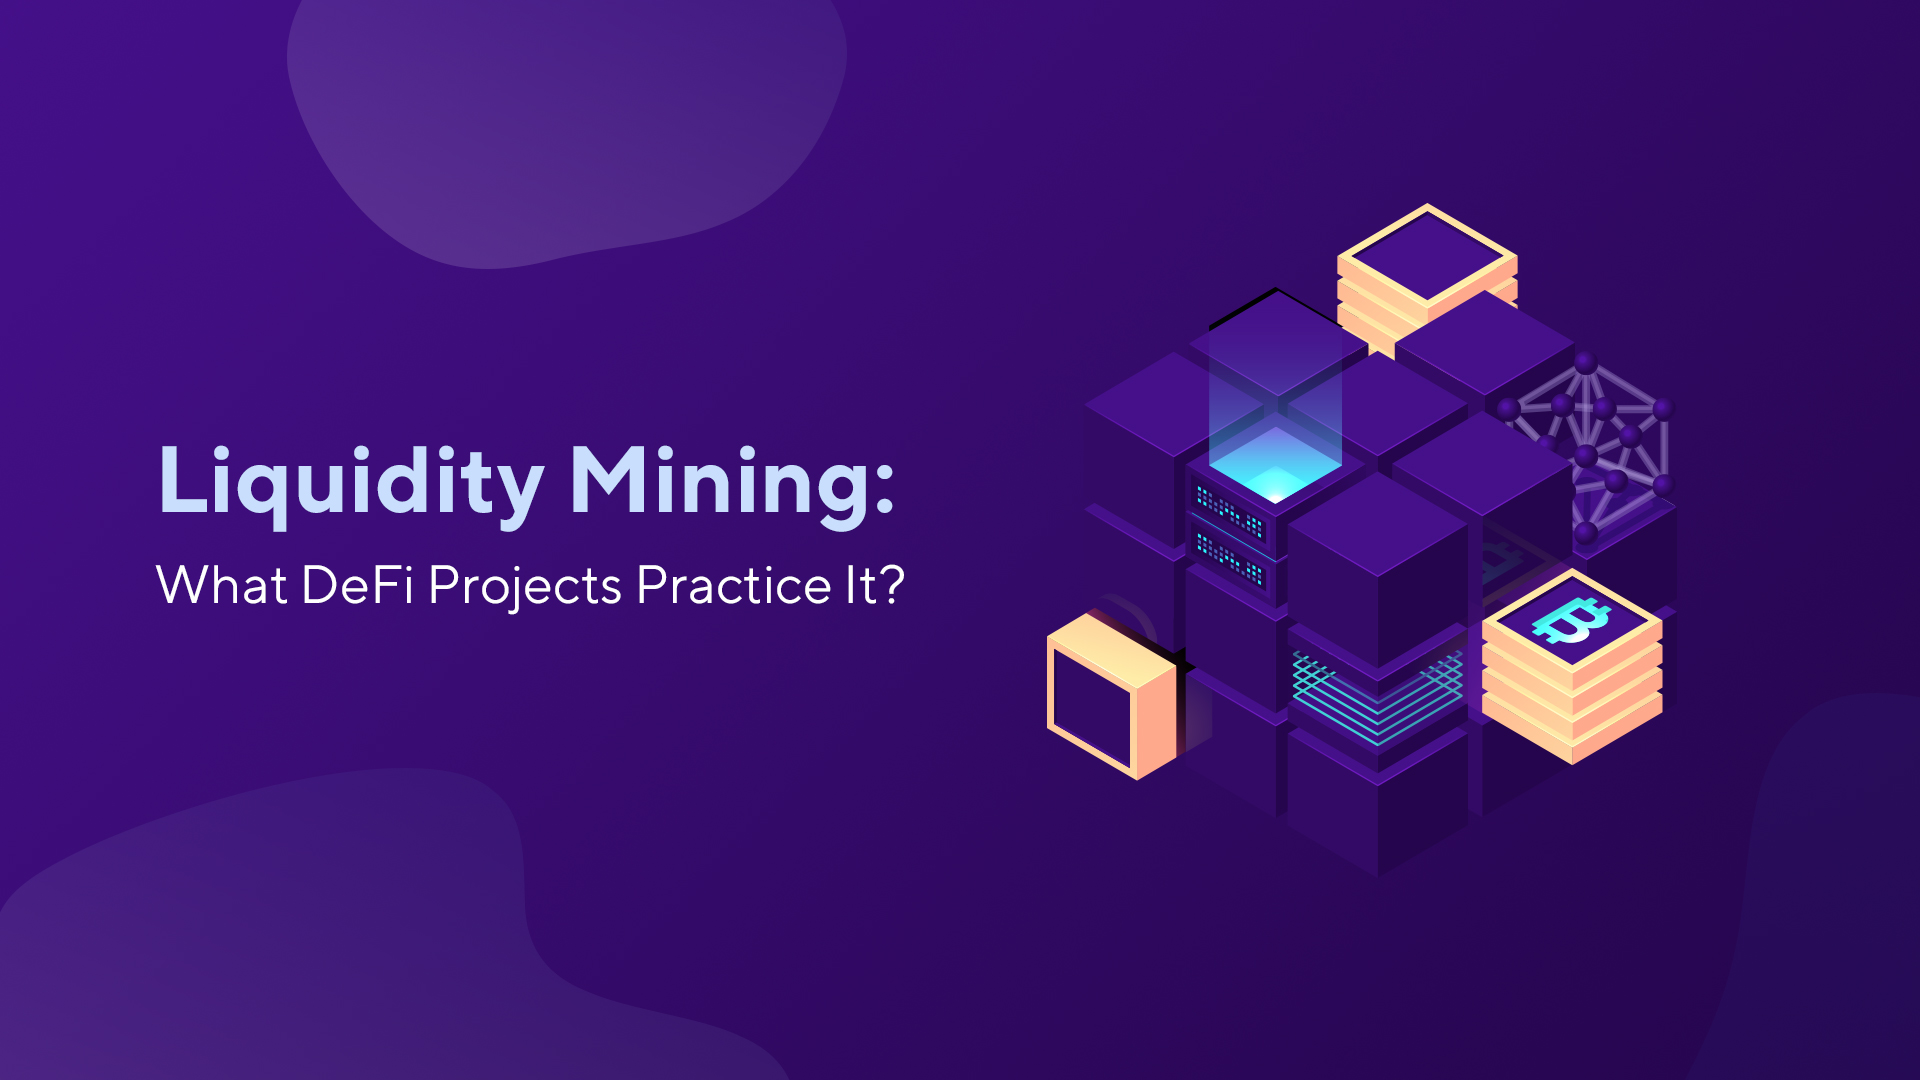 Liquidity Mining: What DeFi Projects Practice It?